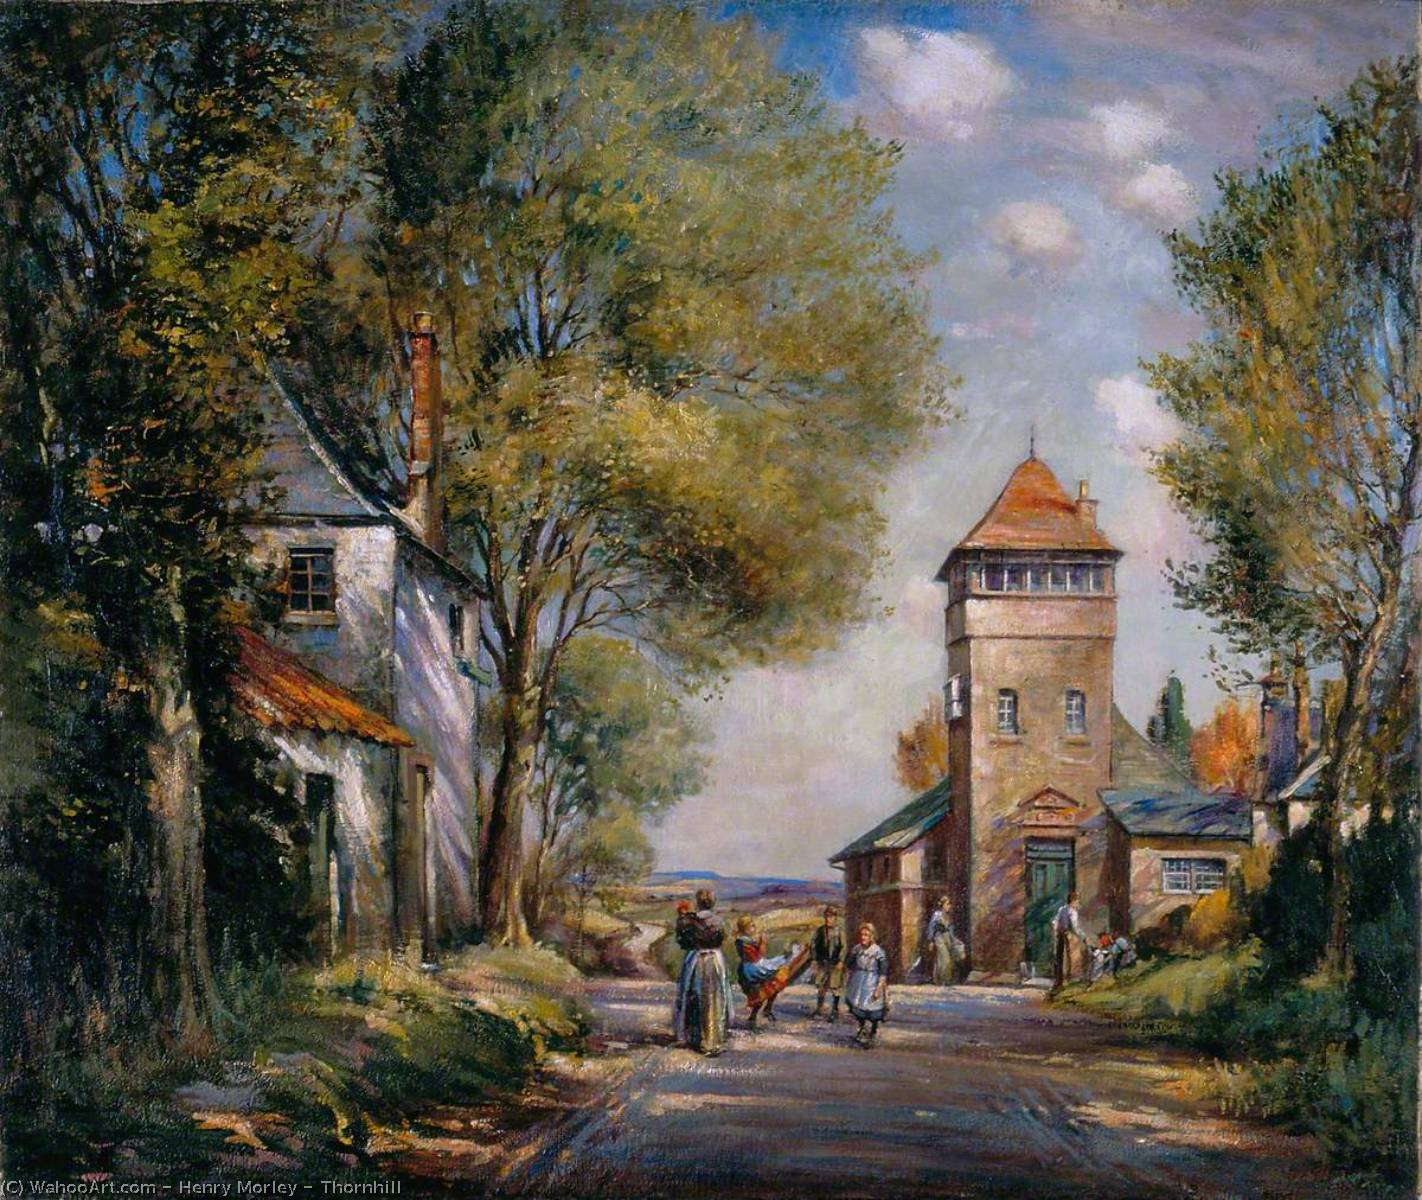 Thornhill, Oil On Canvas by Henry Morley